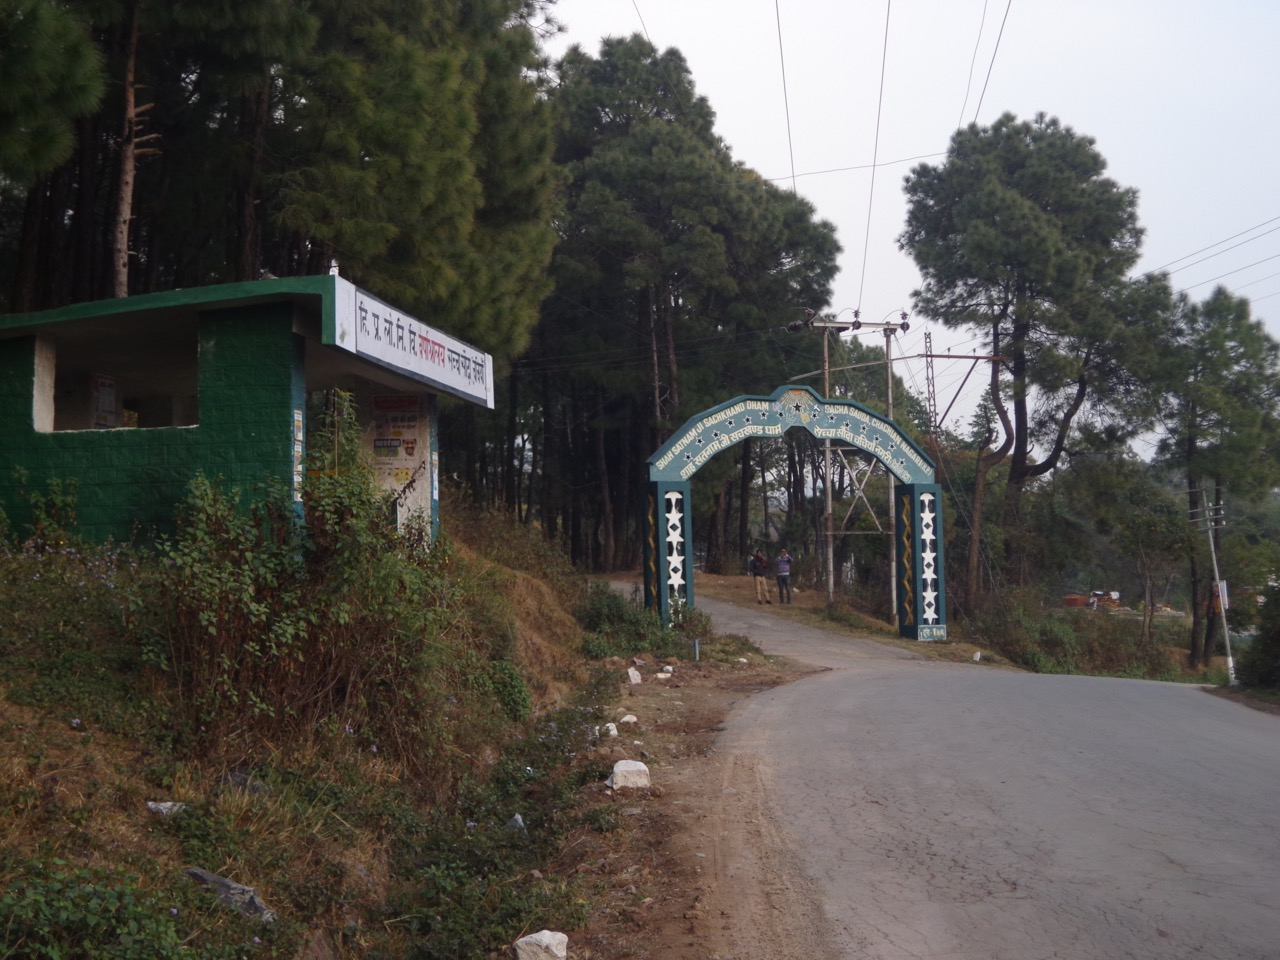 Chachian village has a nice entrance, an electric substation and a clean bus stand.